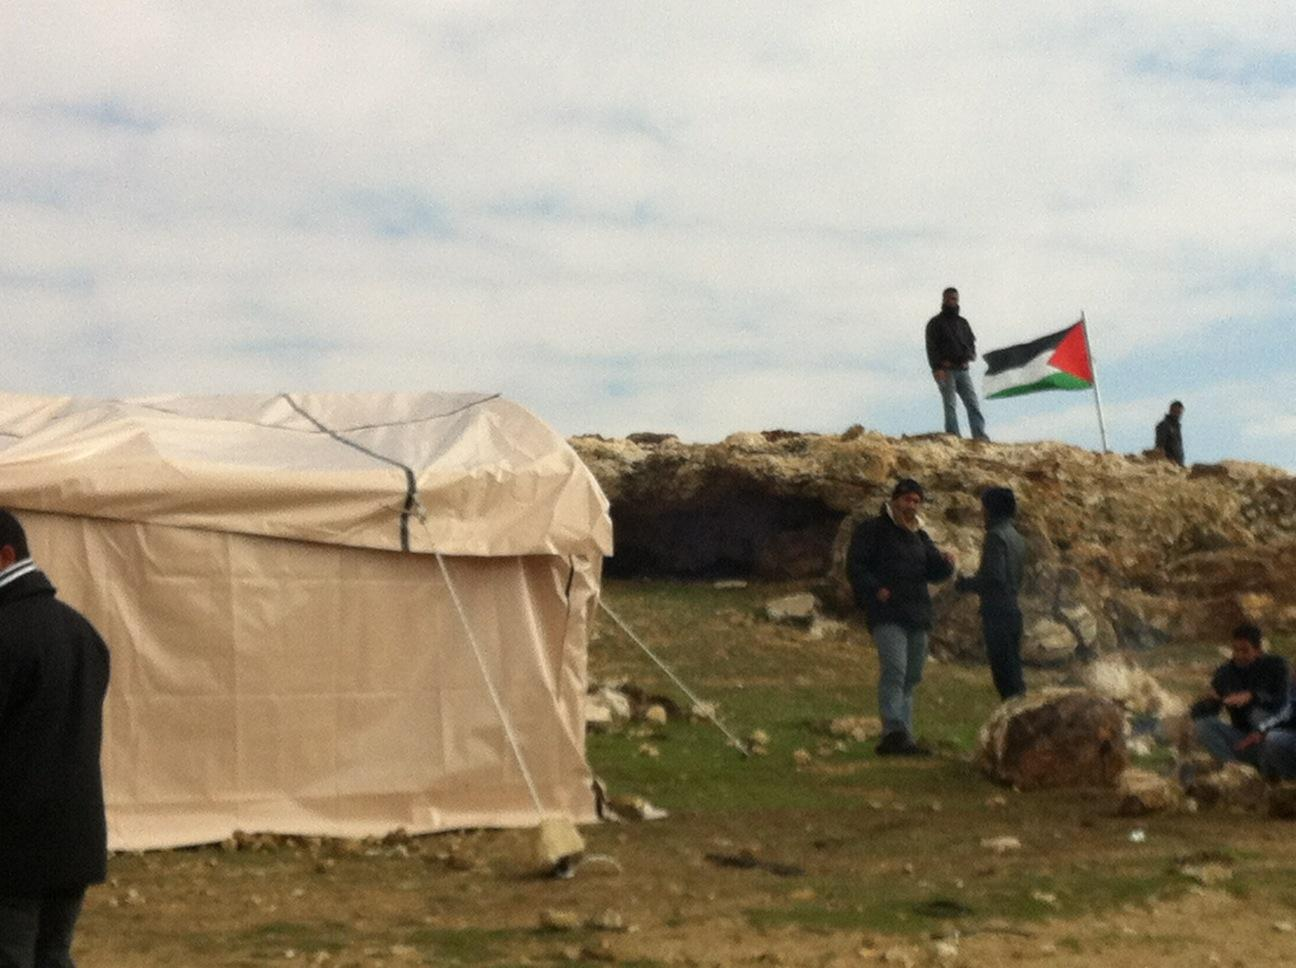 The Palestinian flag was raised today at Bab Al-Shams tent village in E-1